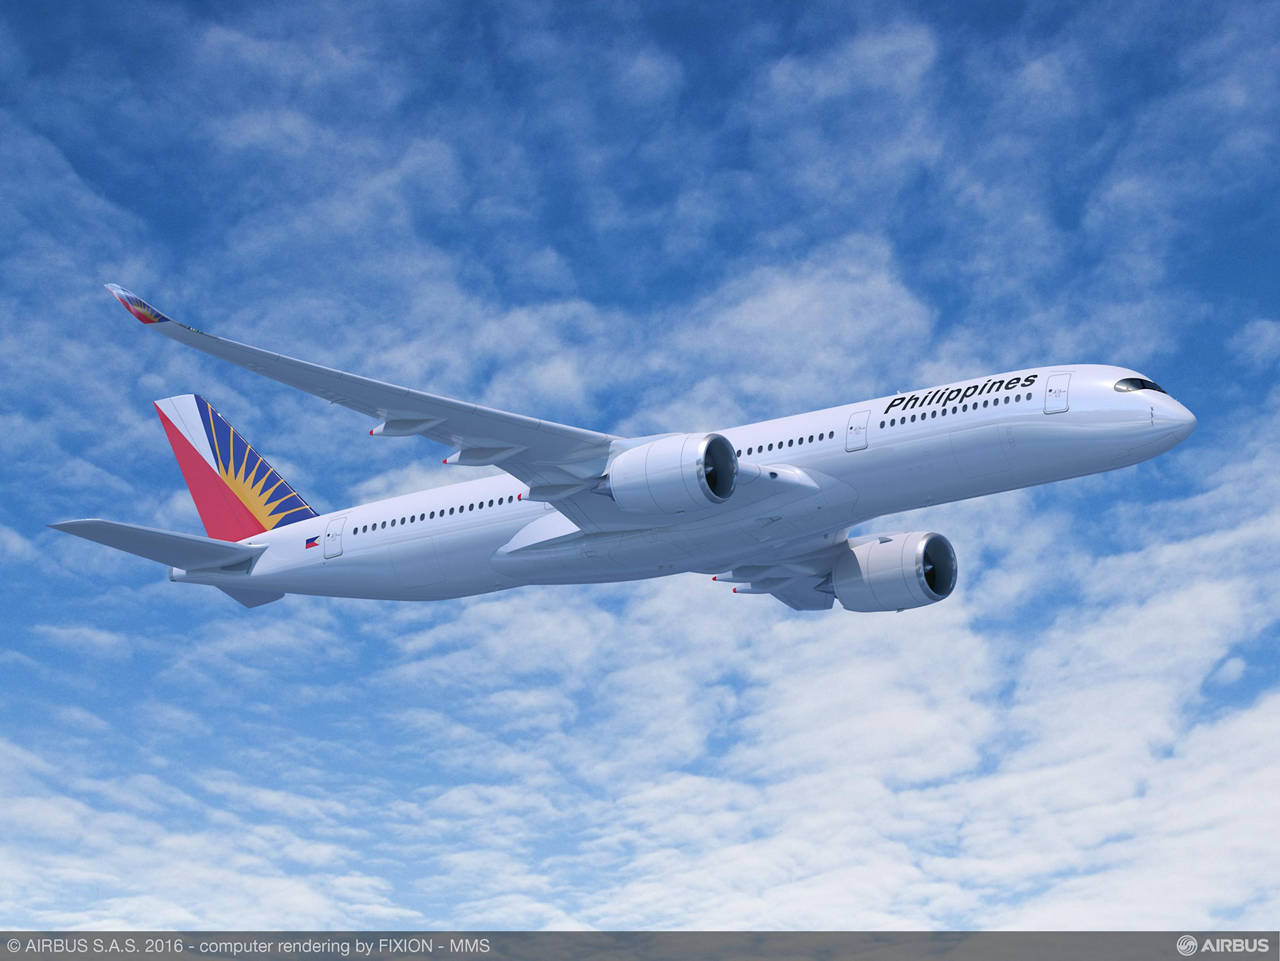 Philippine Airlines (PAL) will use the A350 XWB as the flagship of its future long-haul fleet, operating the highly efficient widebody aircraft on non-stop flights to the U.S. and new destinations in Europe